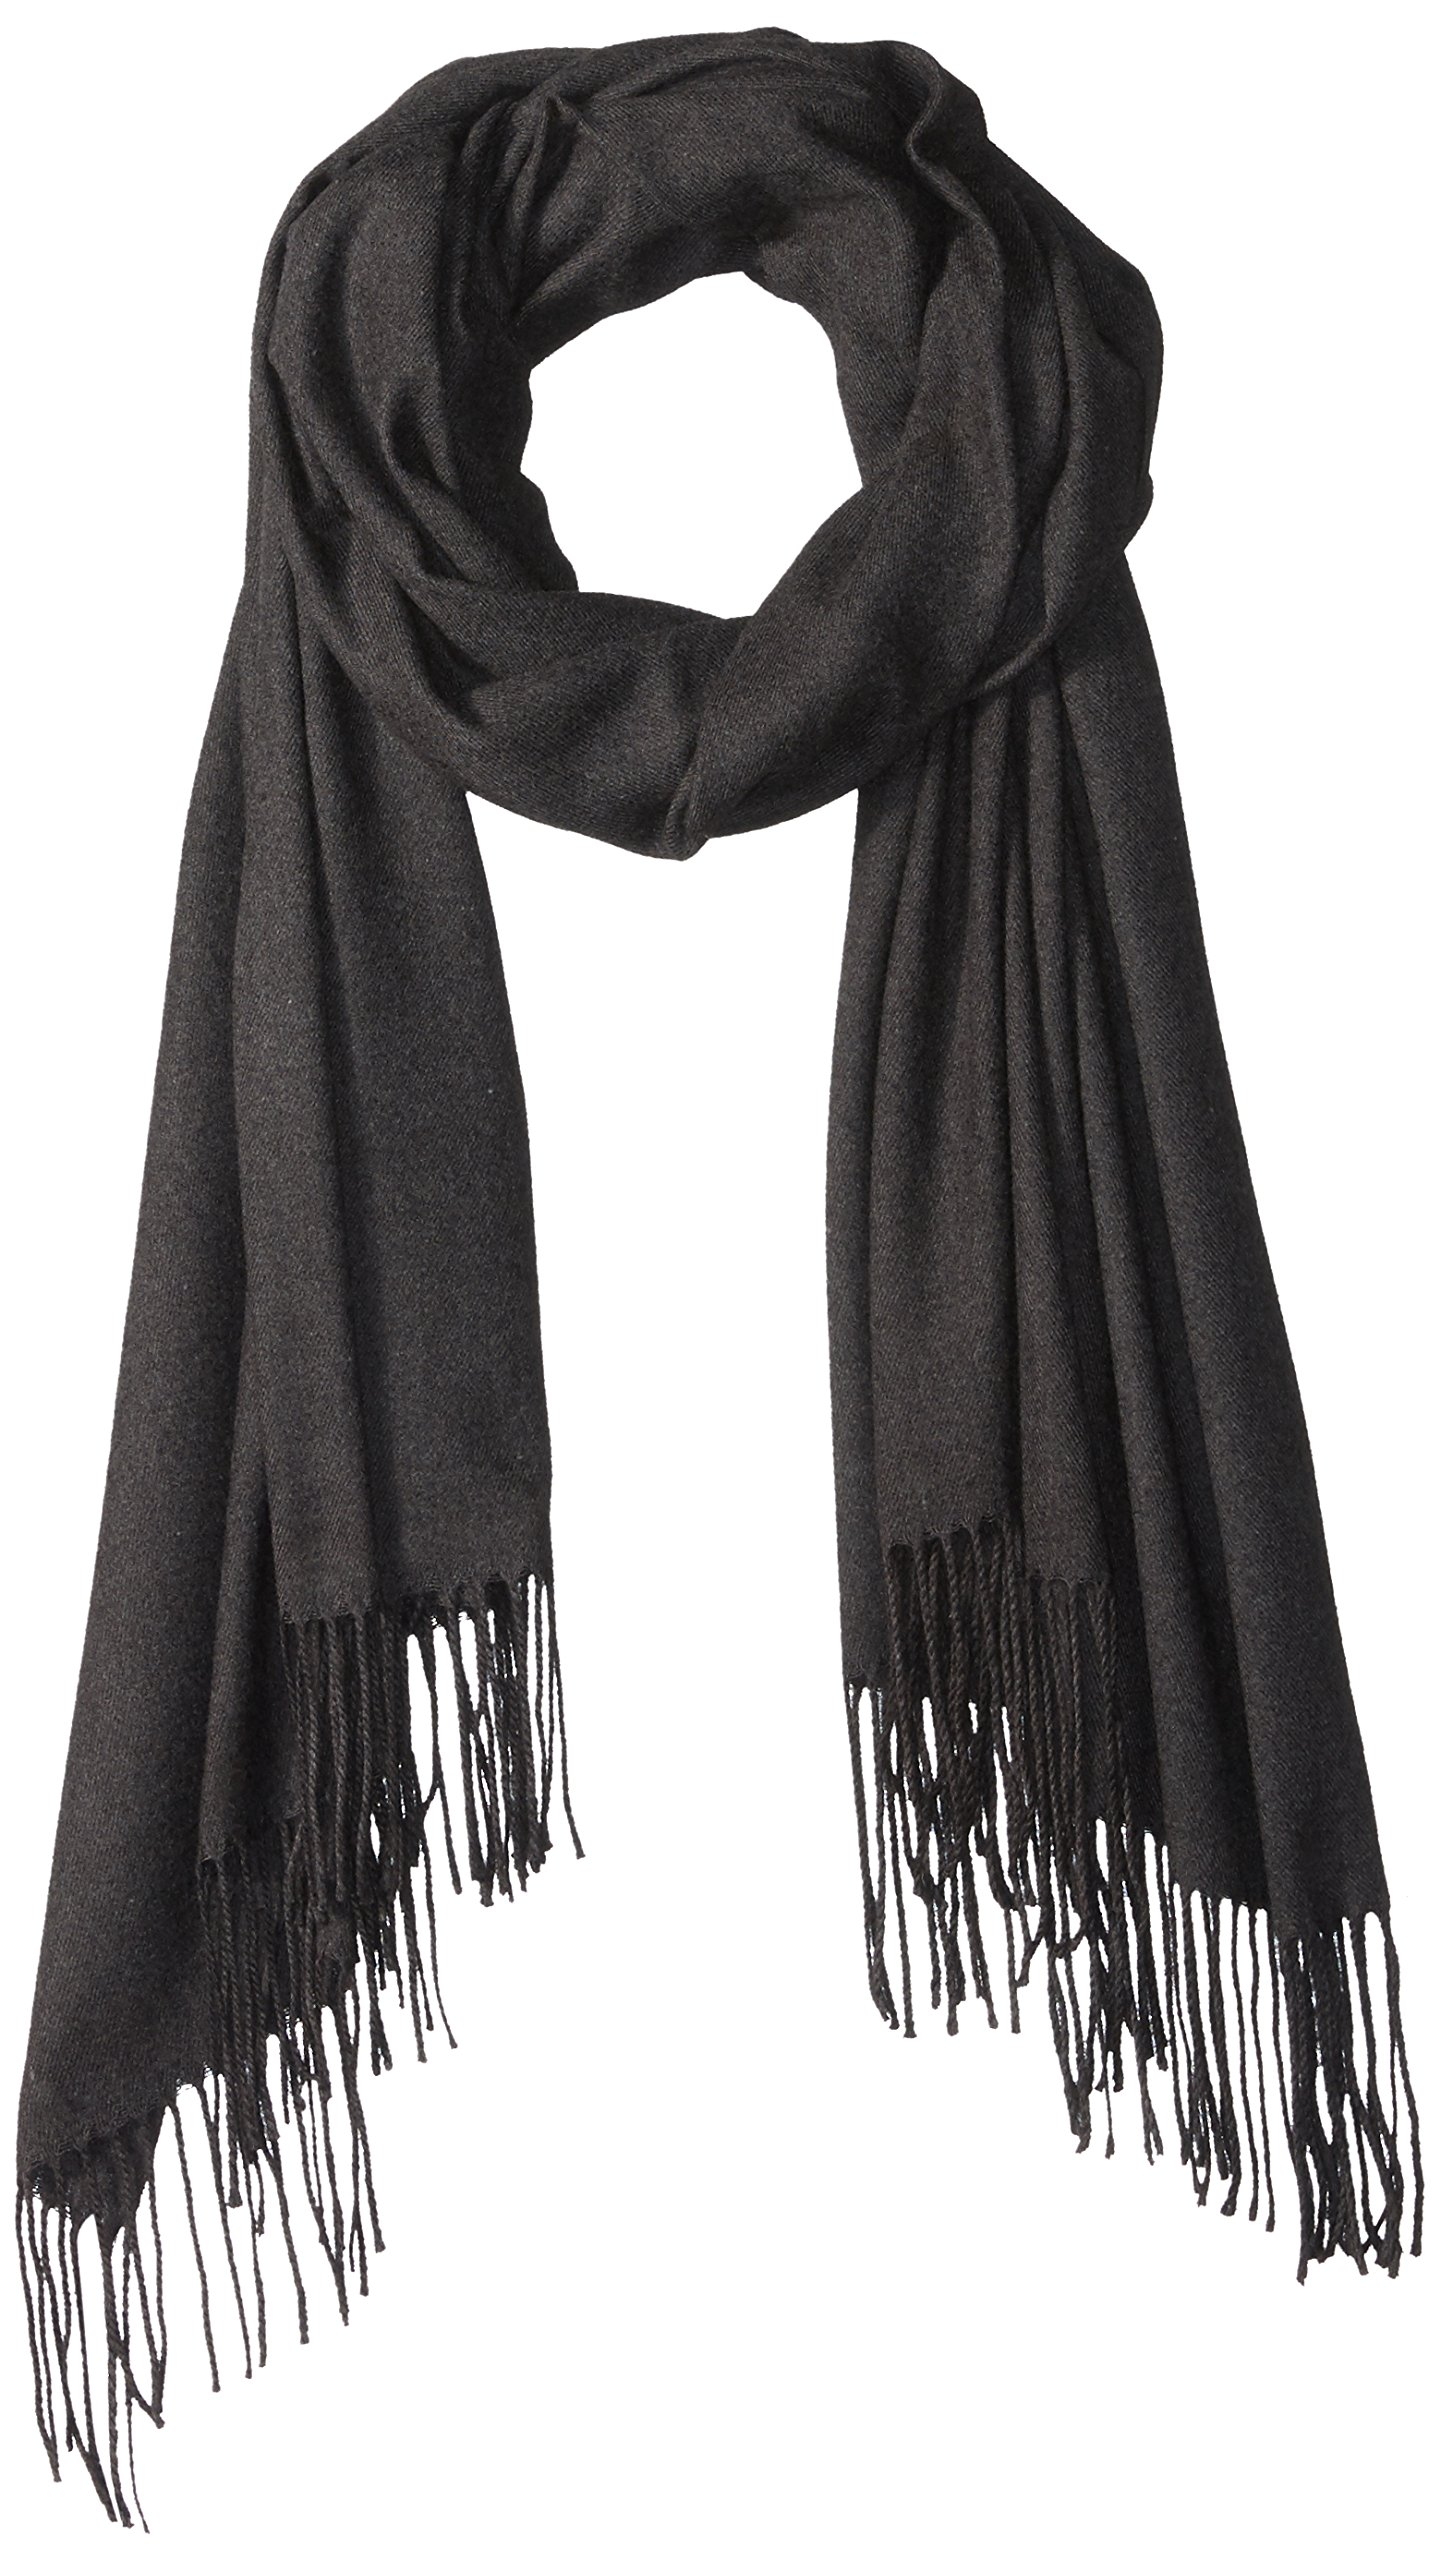 PURE STYLE Girlfriends Women's Super Soft, Elegant, Fringed Scarf Pashmina Shawl Versatile, black, One Size